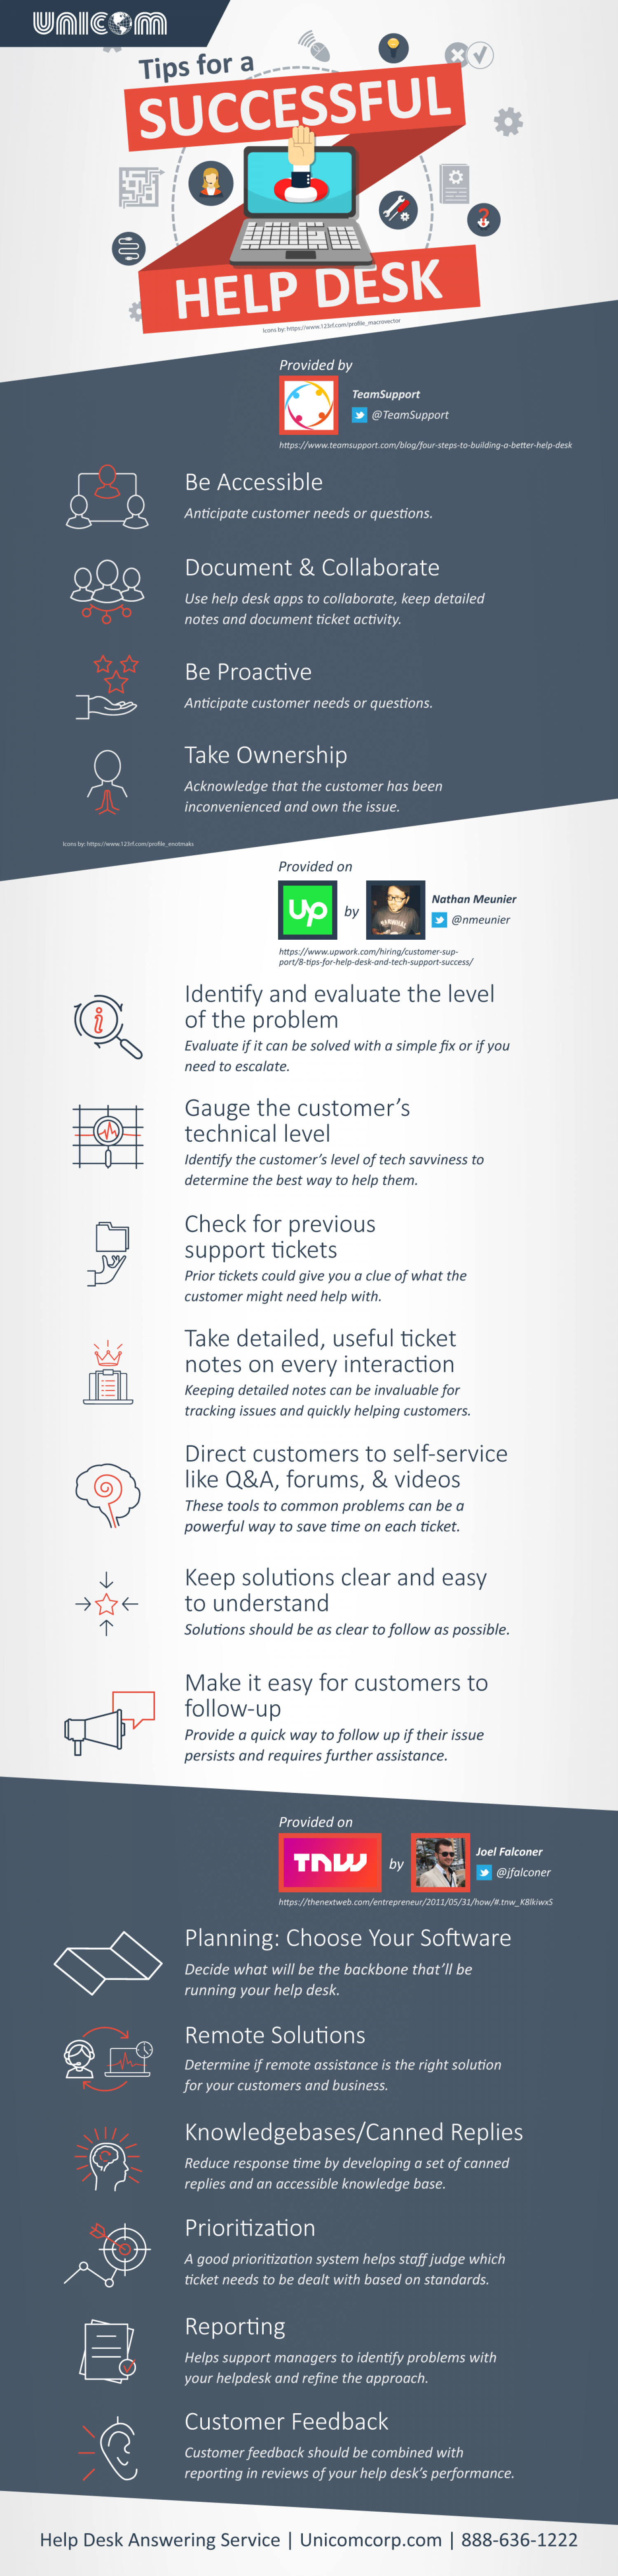 Awesome tips for Creating an Amazing Help Desk Infographic